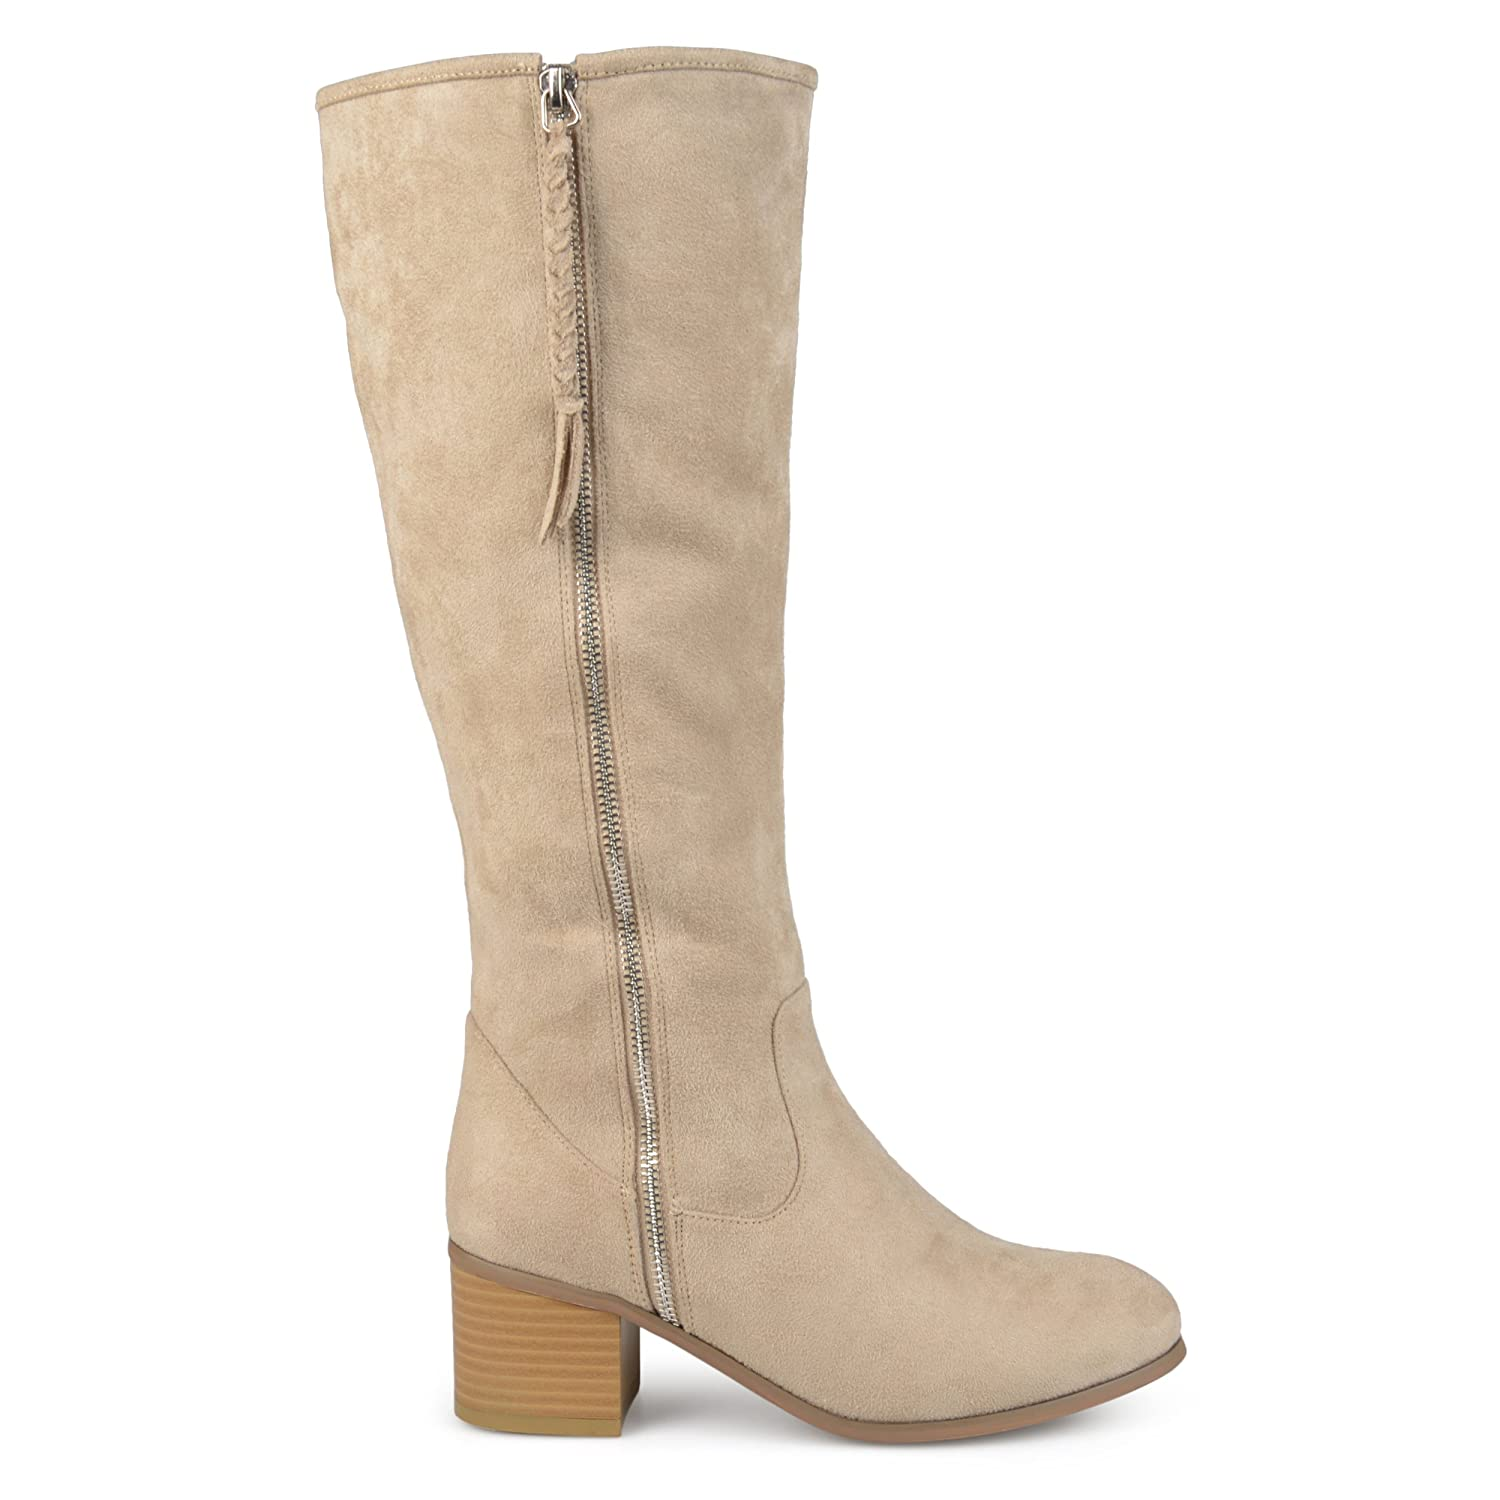 40d6d9d97b5 Brinley Co. Womens Regular and Wide Calf Faux Suede Mid-Calf Stacked Wood  Heel Boots